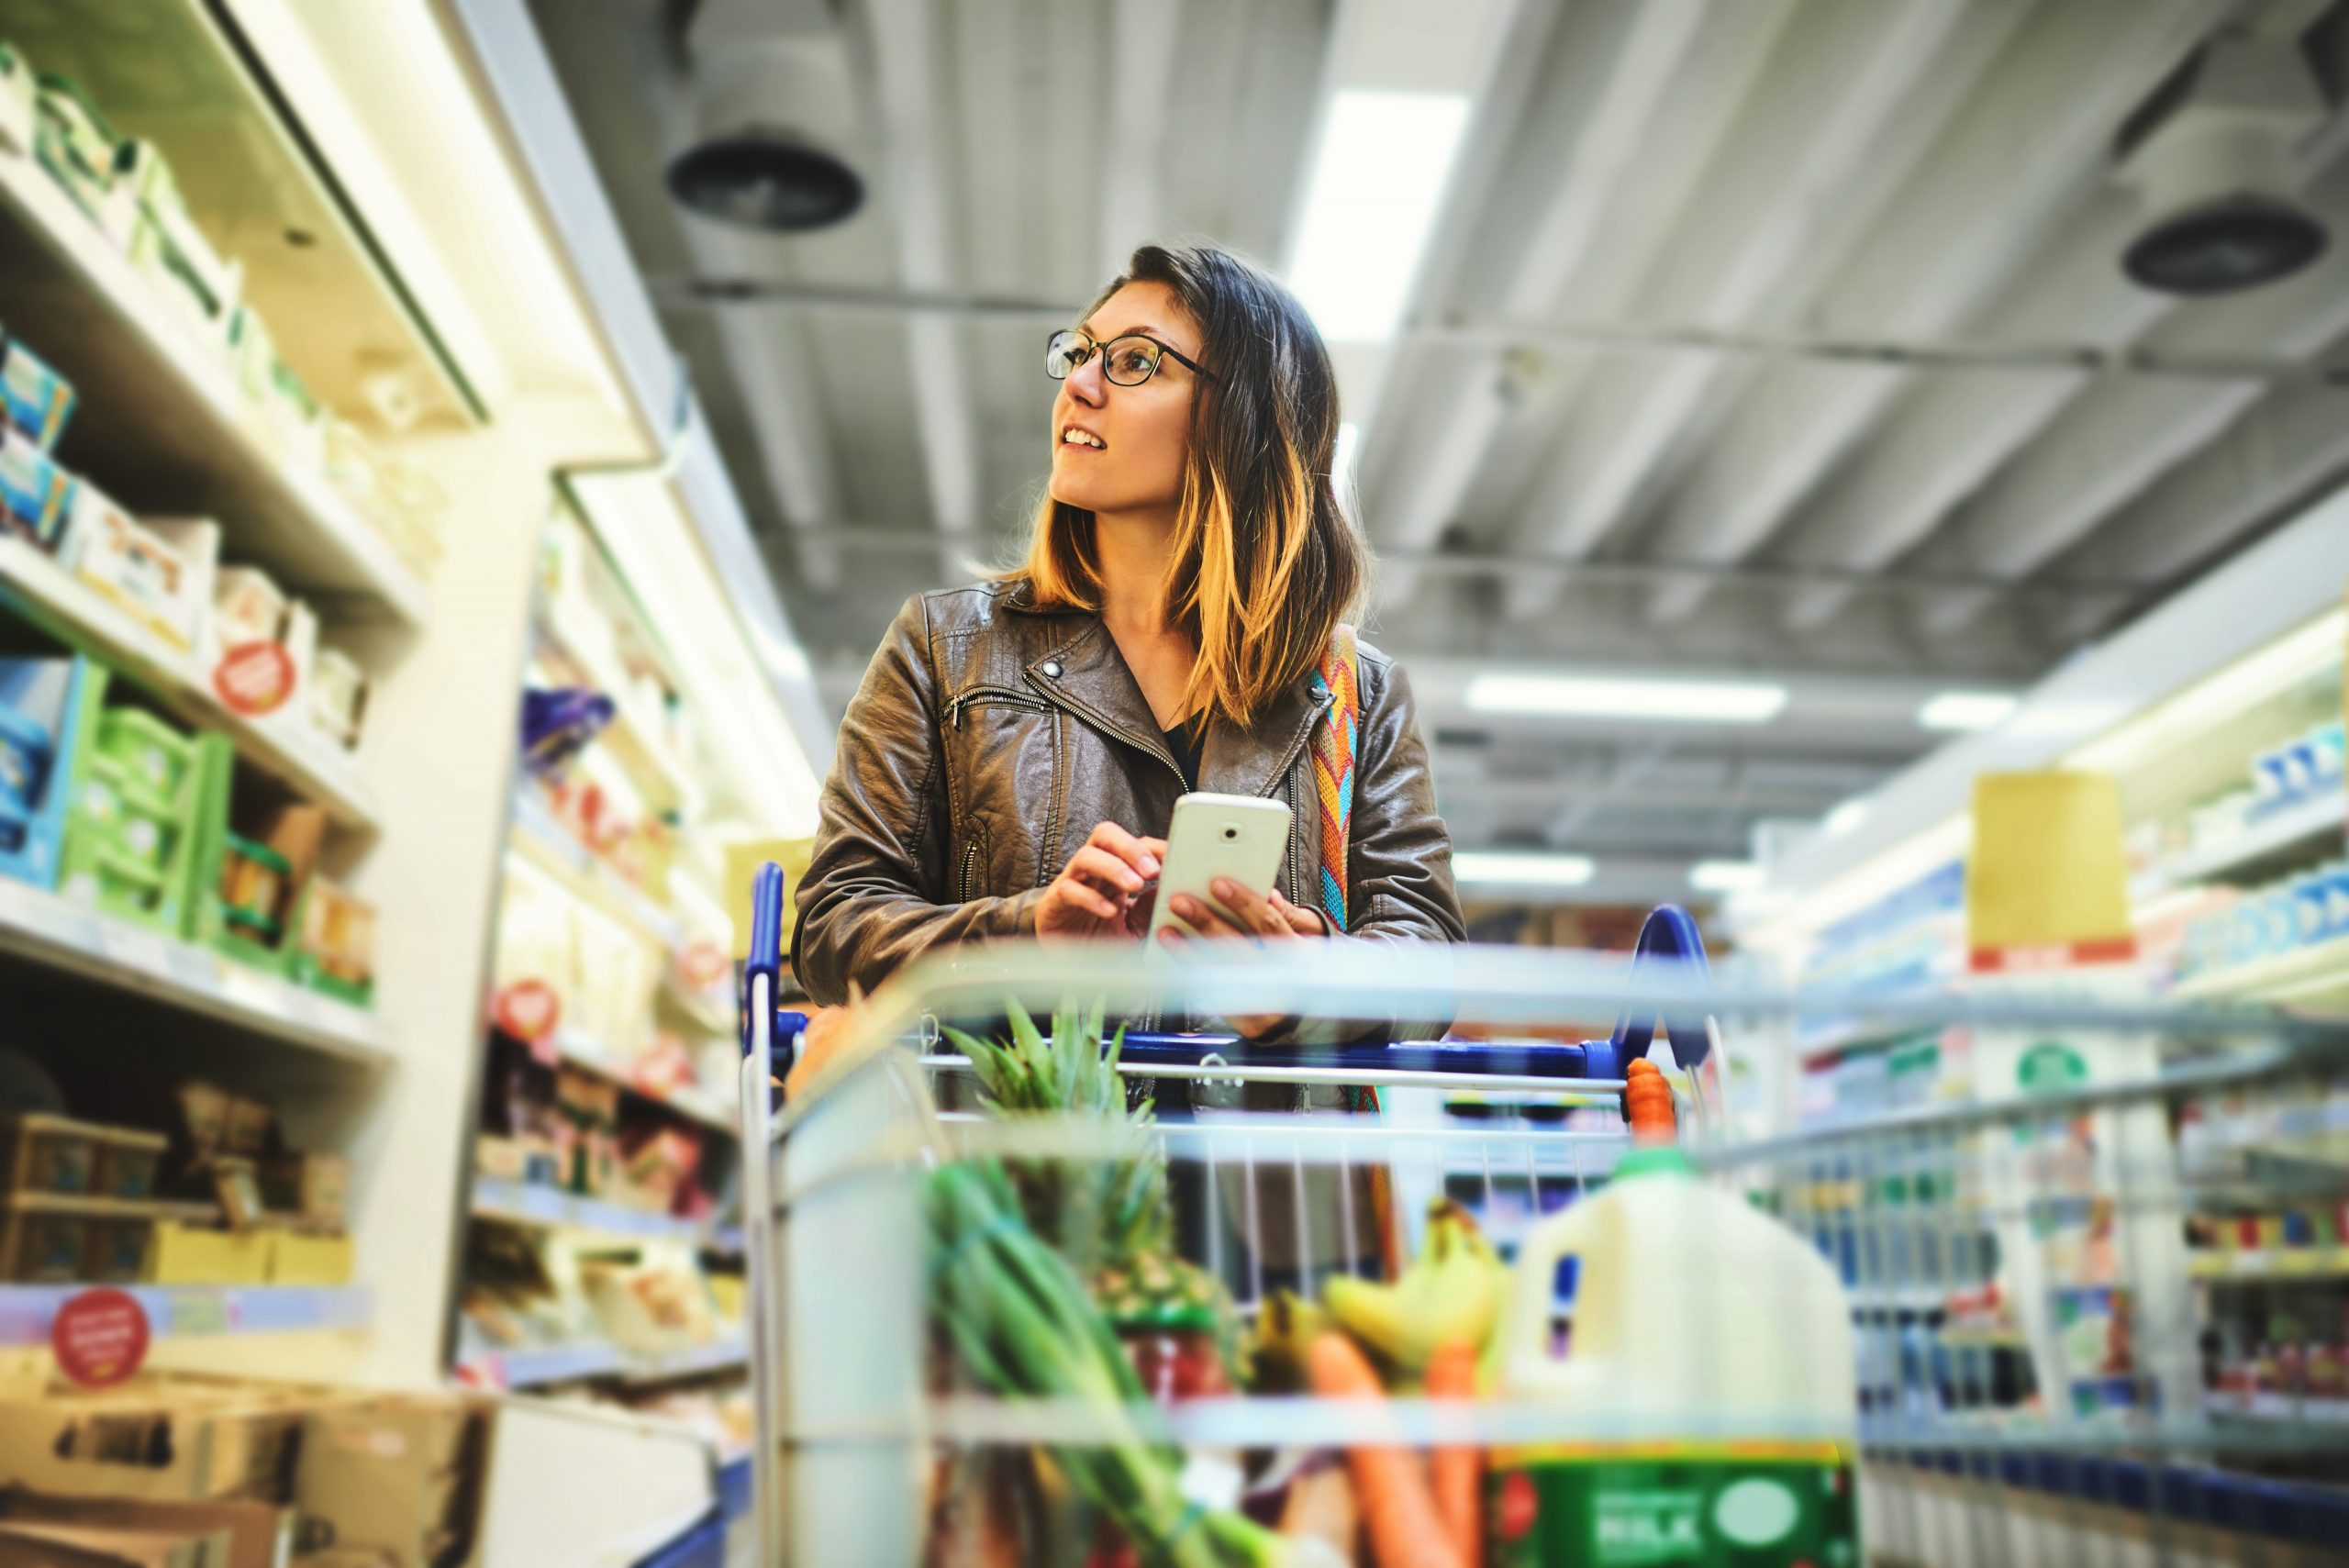 Lady in supermarket browsing products with mobile phone in hand